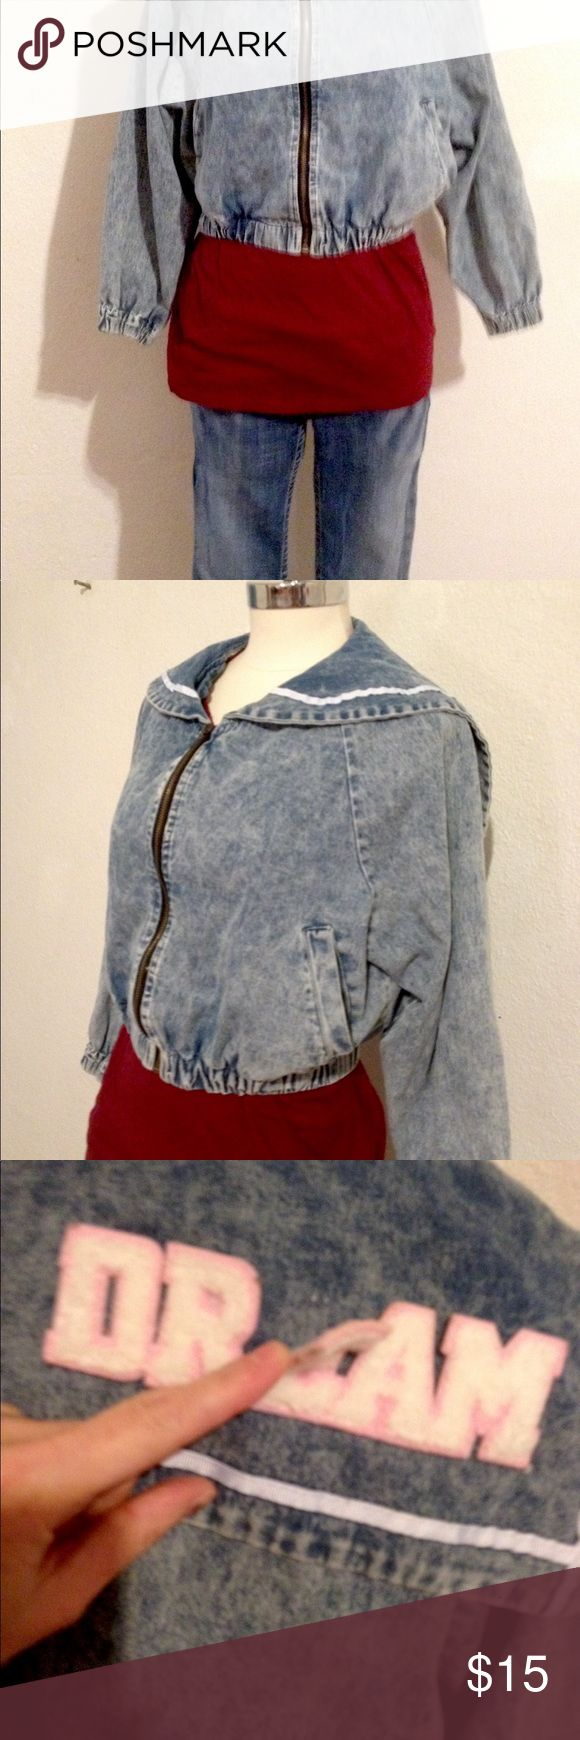 Woman's Size Small Asian Jacket Light weight, synced, short waisted jeans jacket, with a 1950s style, square back on the jacket that reads Day Dream. A couple of the letters need a drop of fabric glue, so I've priced it accordingly. Size small. Jackets & Coats